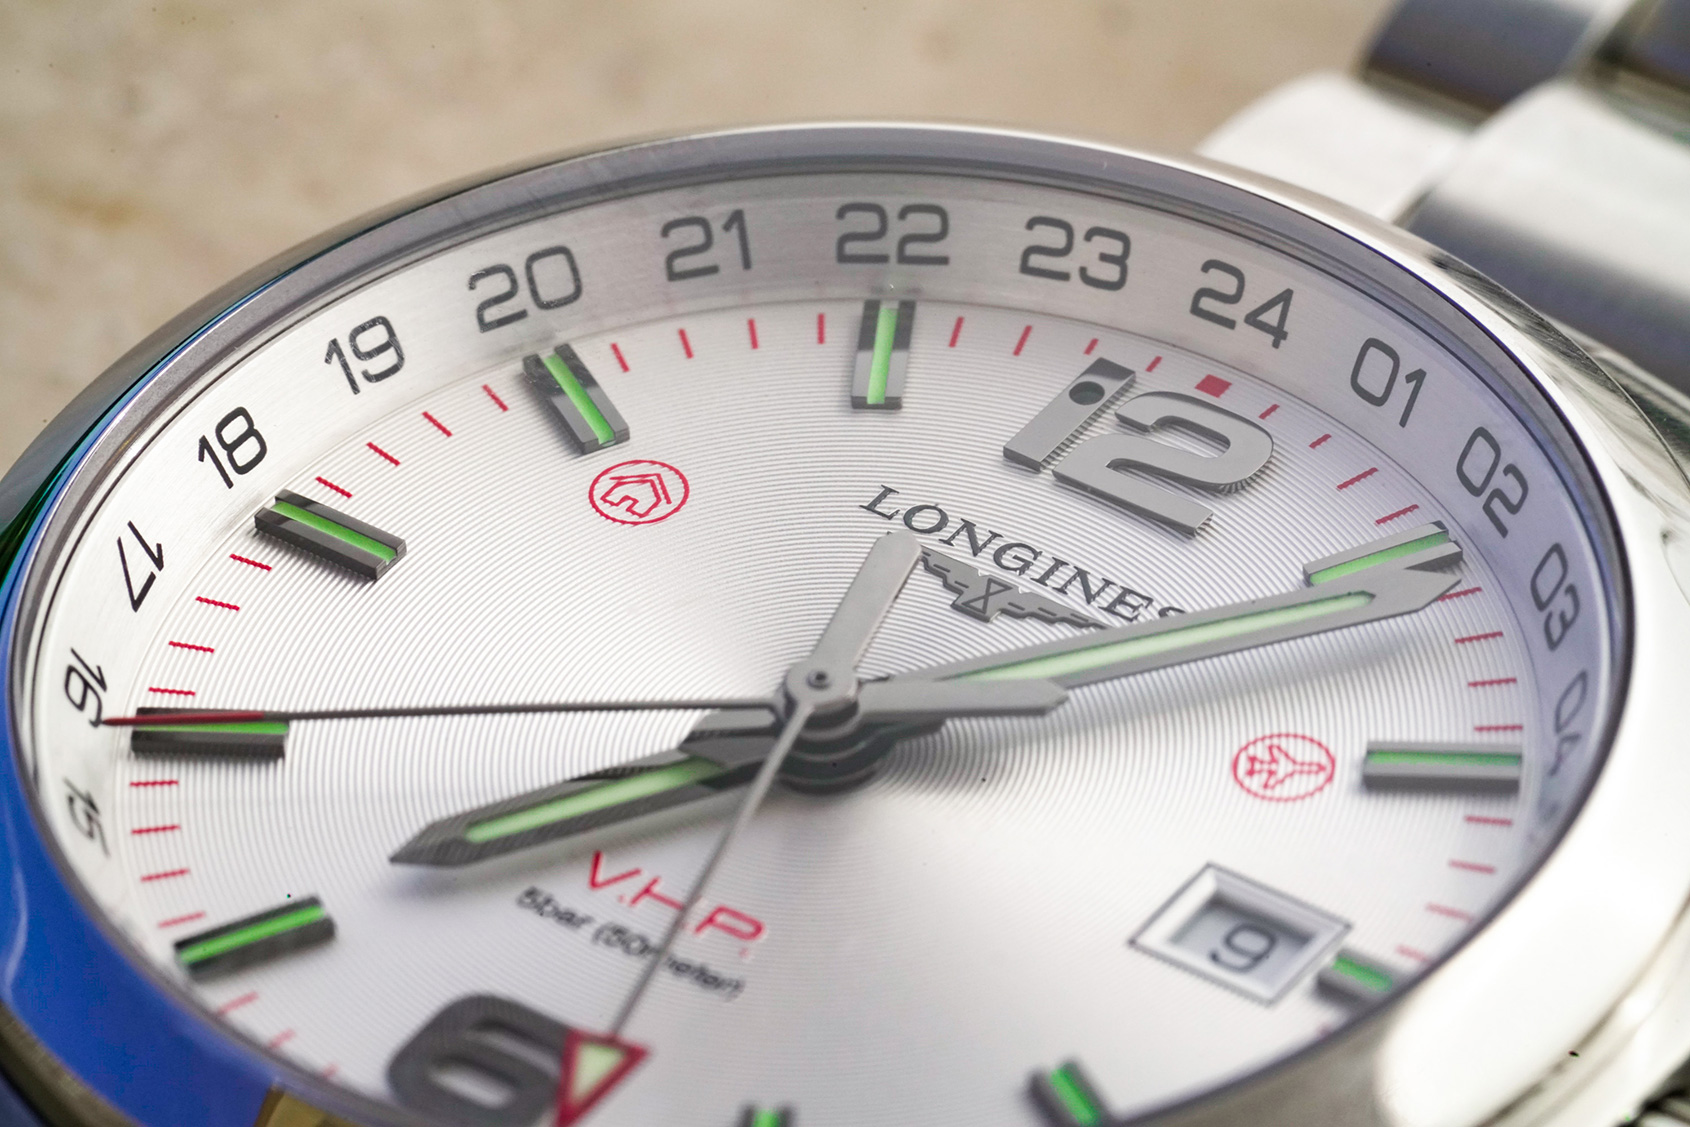 863145fadc6 From a bird s-eye view this Longines dial is quite well executed